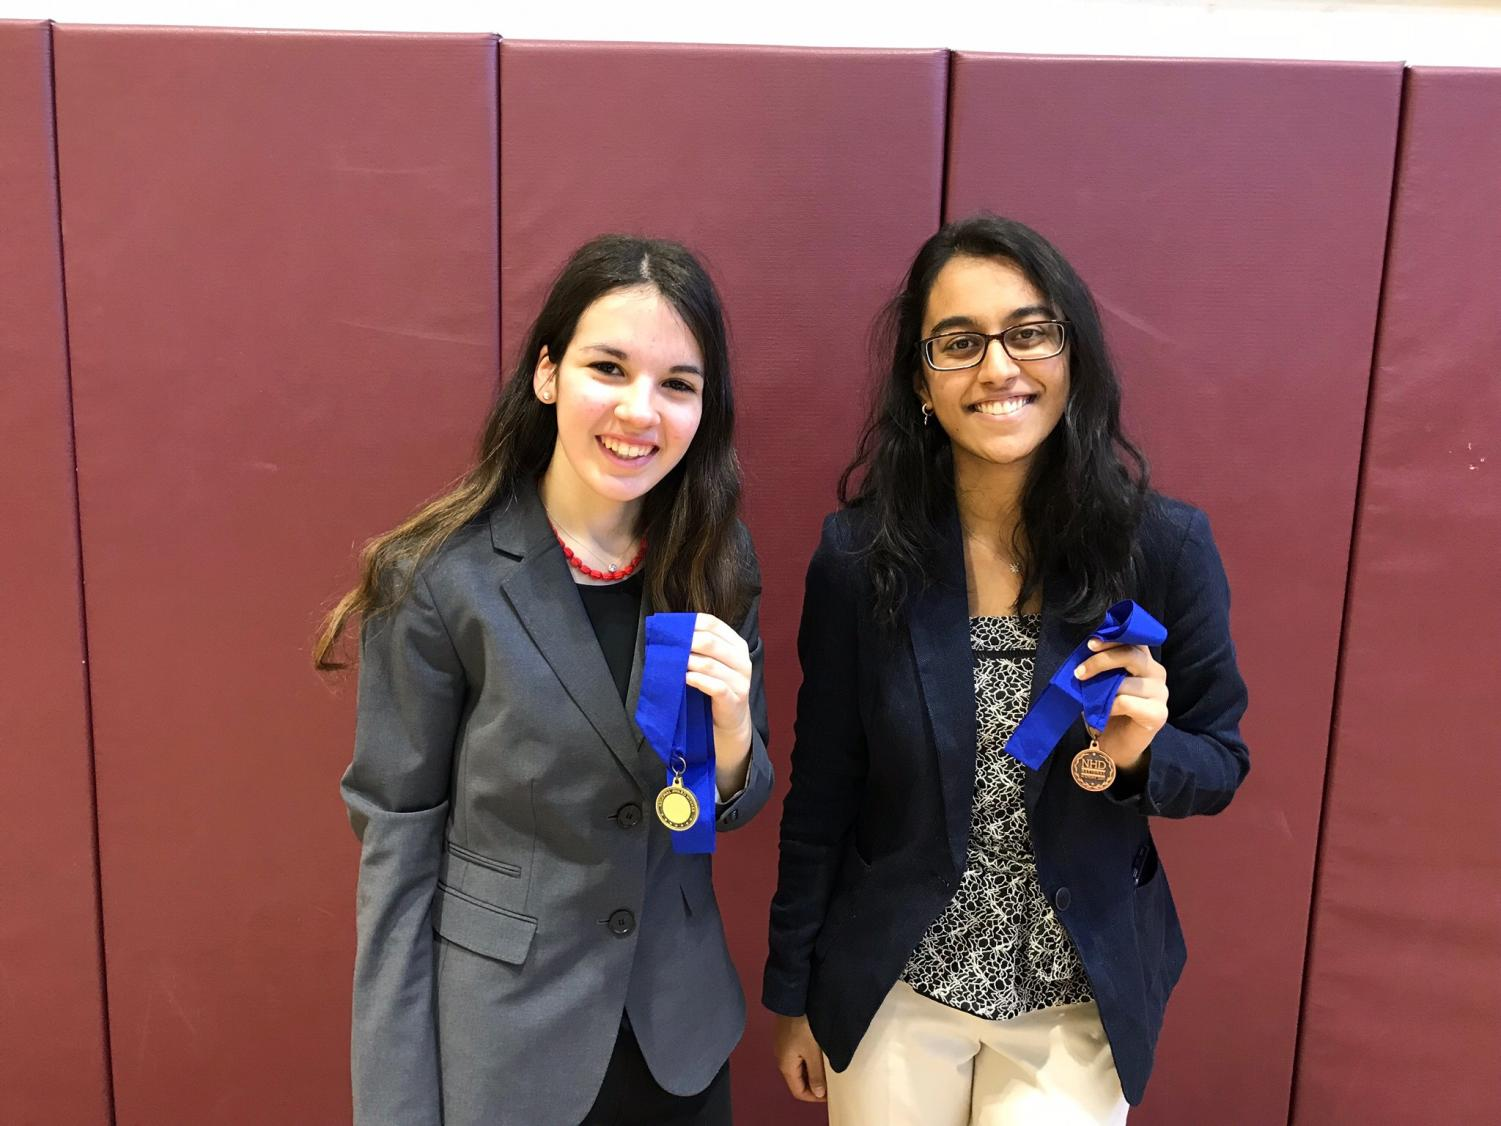 Juniors Helen Meyerson and Vedika Basavatia earned NHD medals for placing 1st and 3rd, respectively.